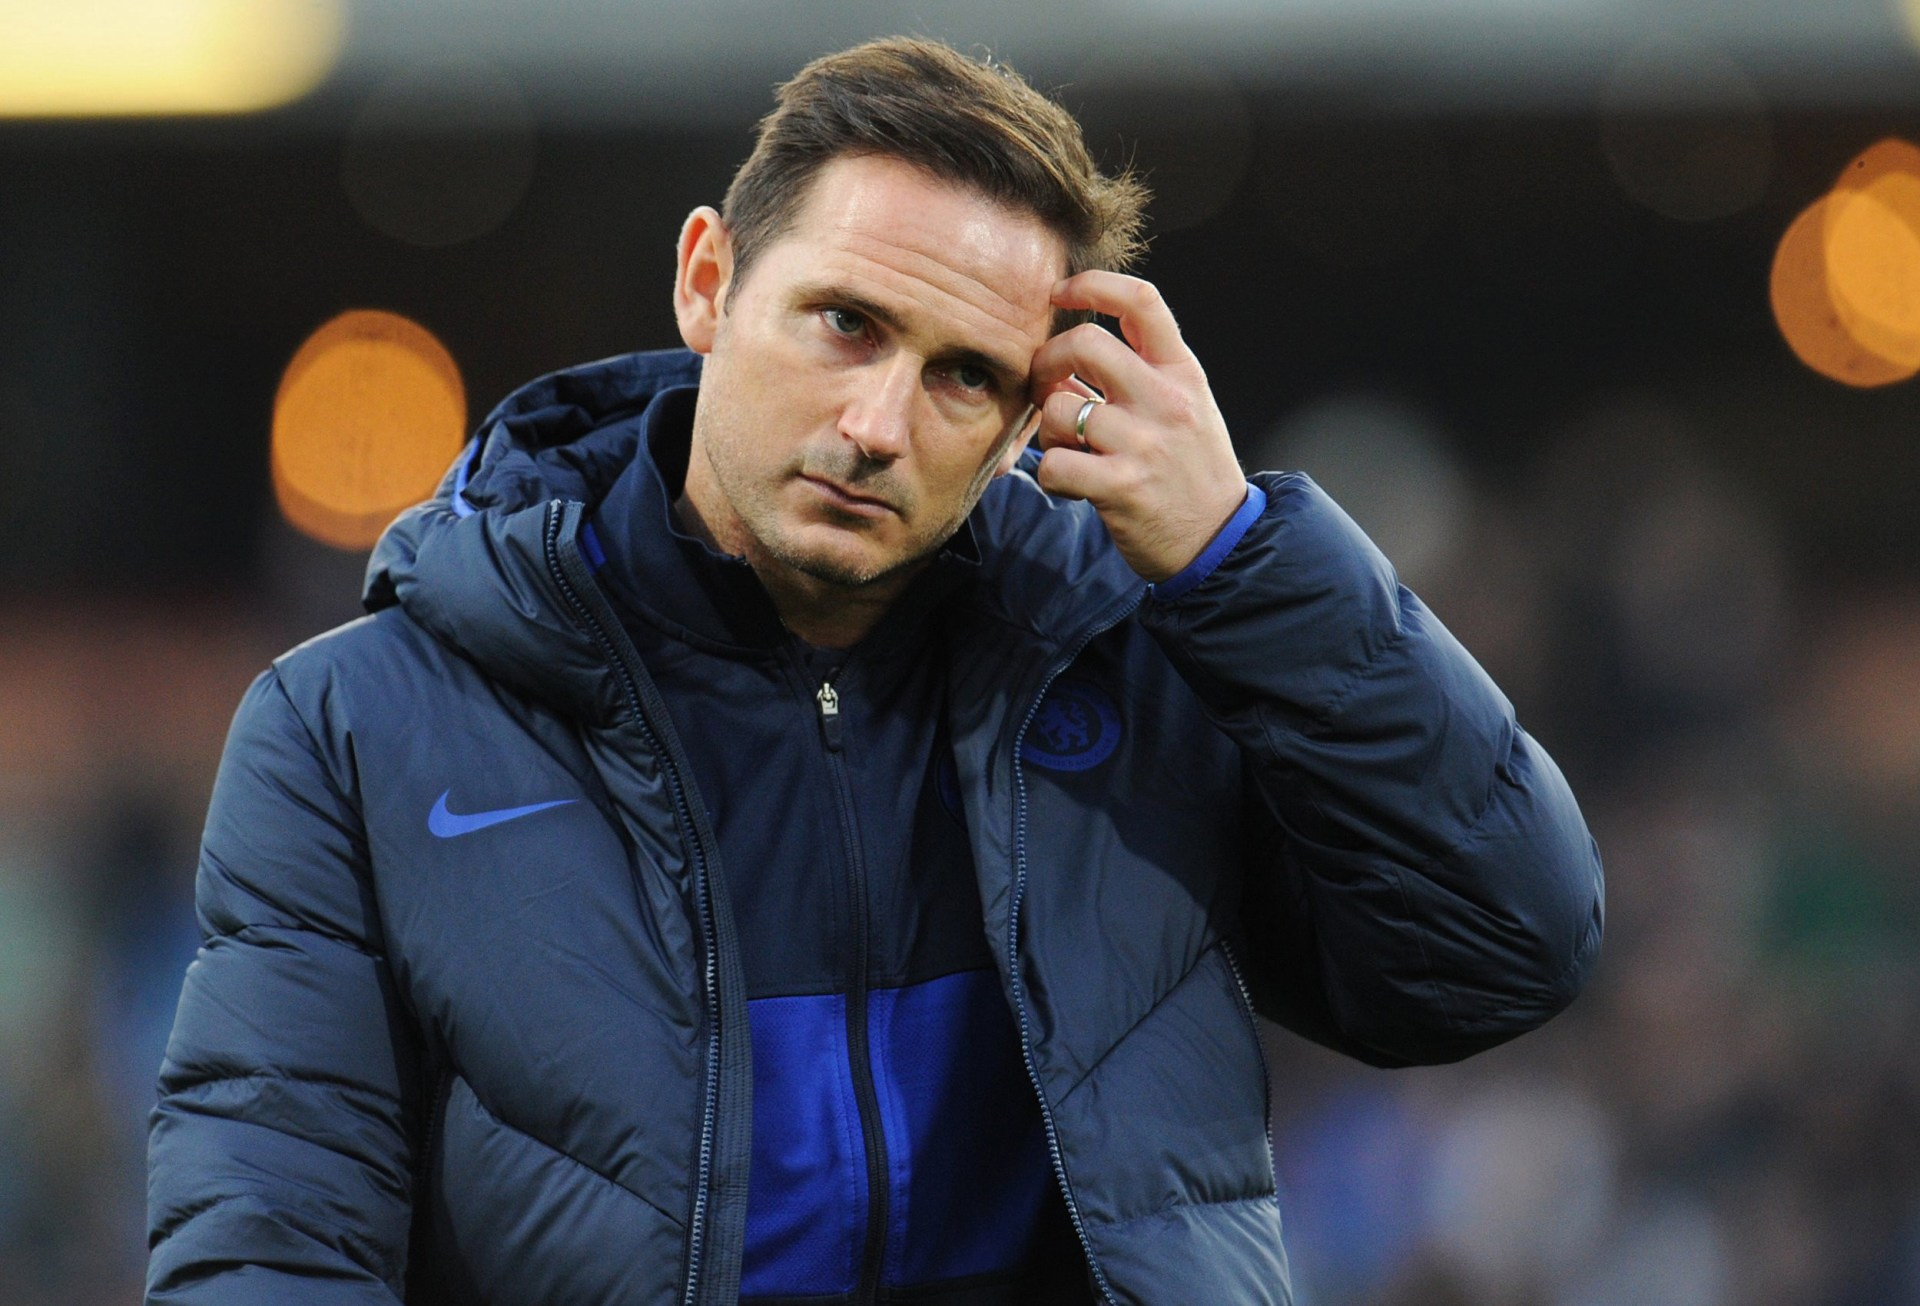 Frank Lampard claims Chelsea deserve delayed start ahead of 2020-21 season, cites additional injury fears at Chelsea - THE SPORTS ROOM